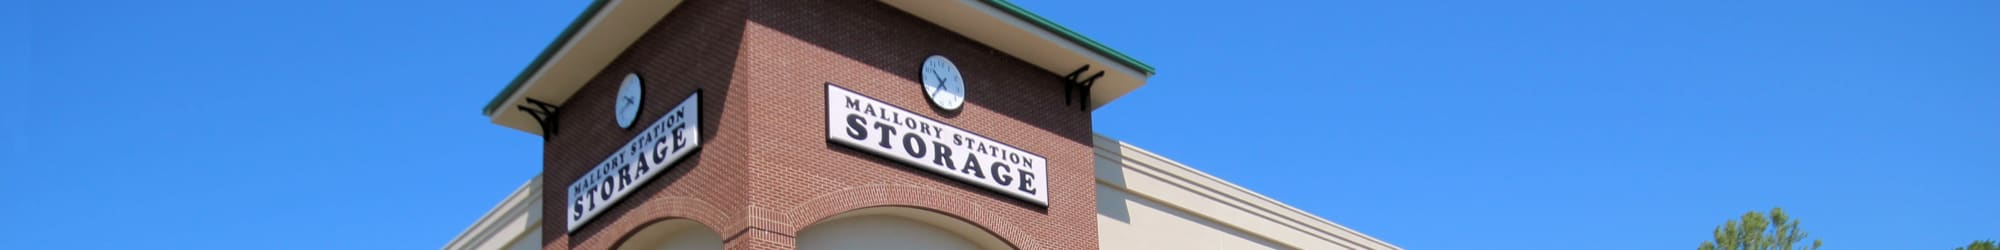 Contact us today at Mallory Station Storage in Brentwood, Tennessee